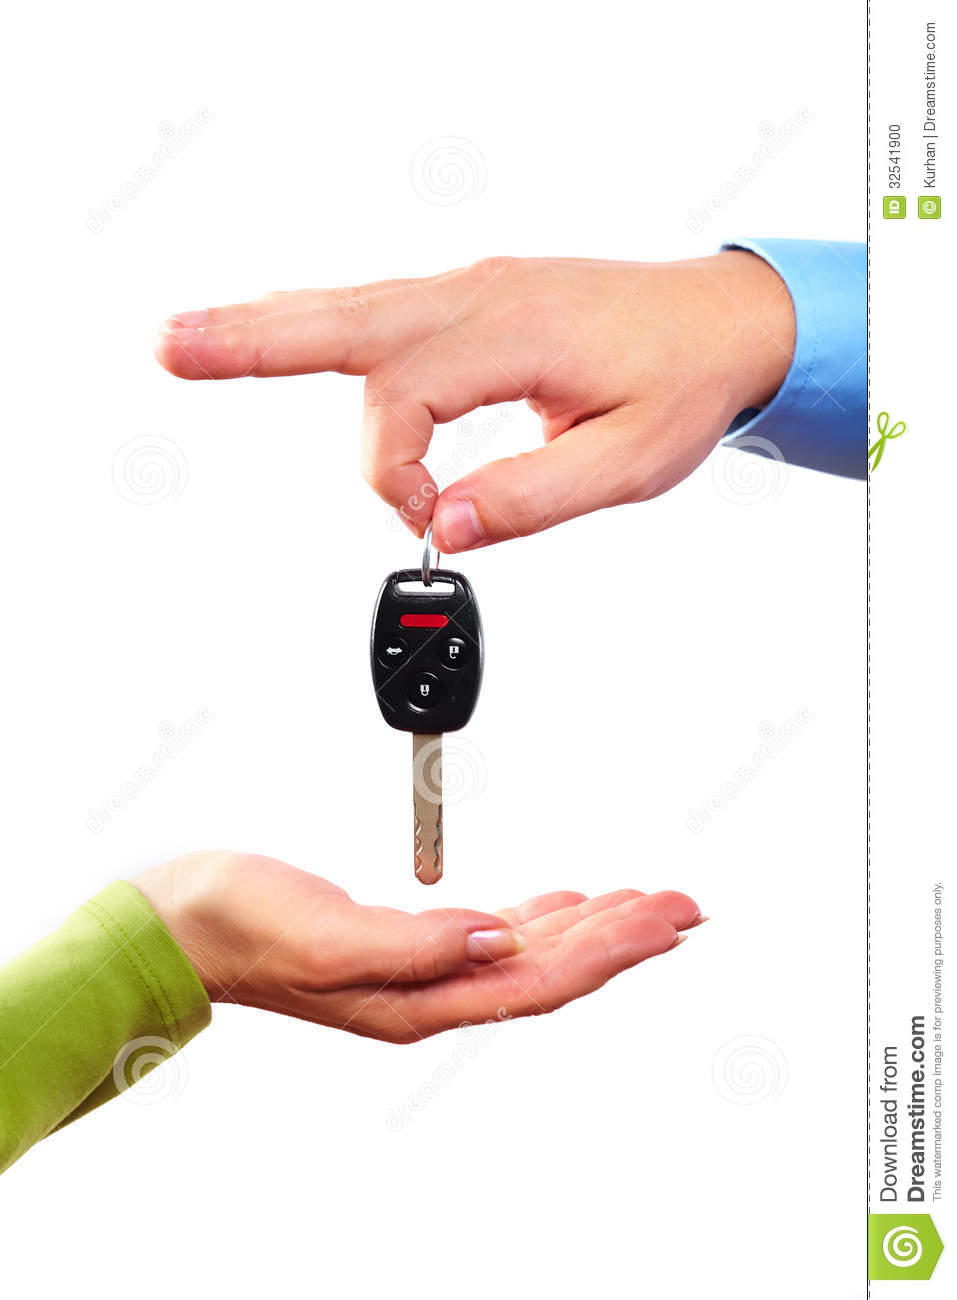 Stock Images T Shirt Bikini Bottoms Image15952414 moreover Broken Garage Door Opener 5266098 moreover Photoshop Psd People Blocks 6 in addition Enterprise 3teachersbook furthermore Pull. on man opening car door